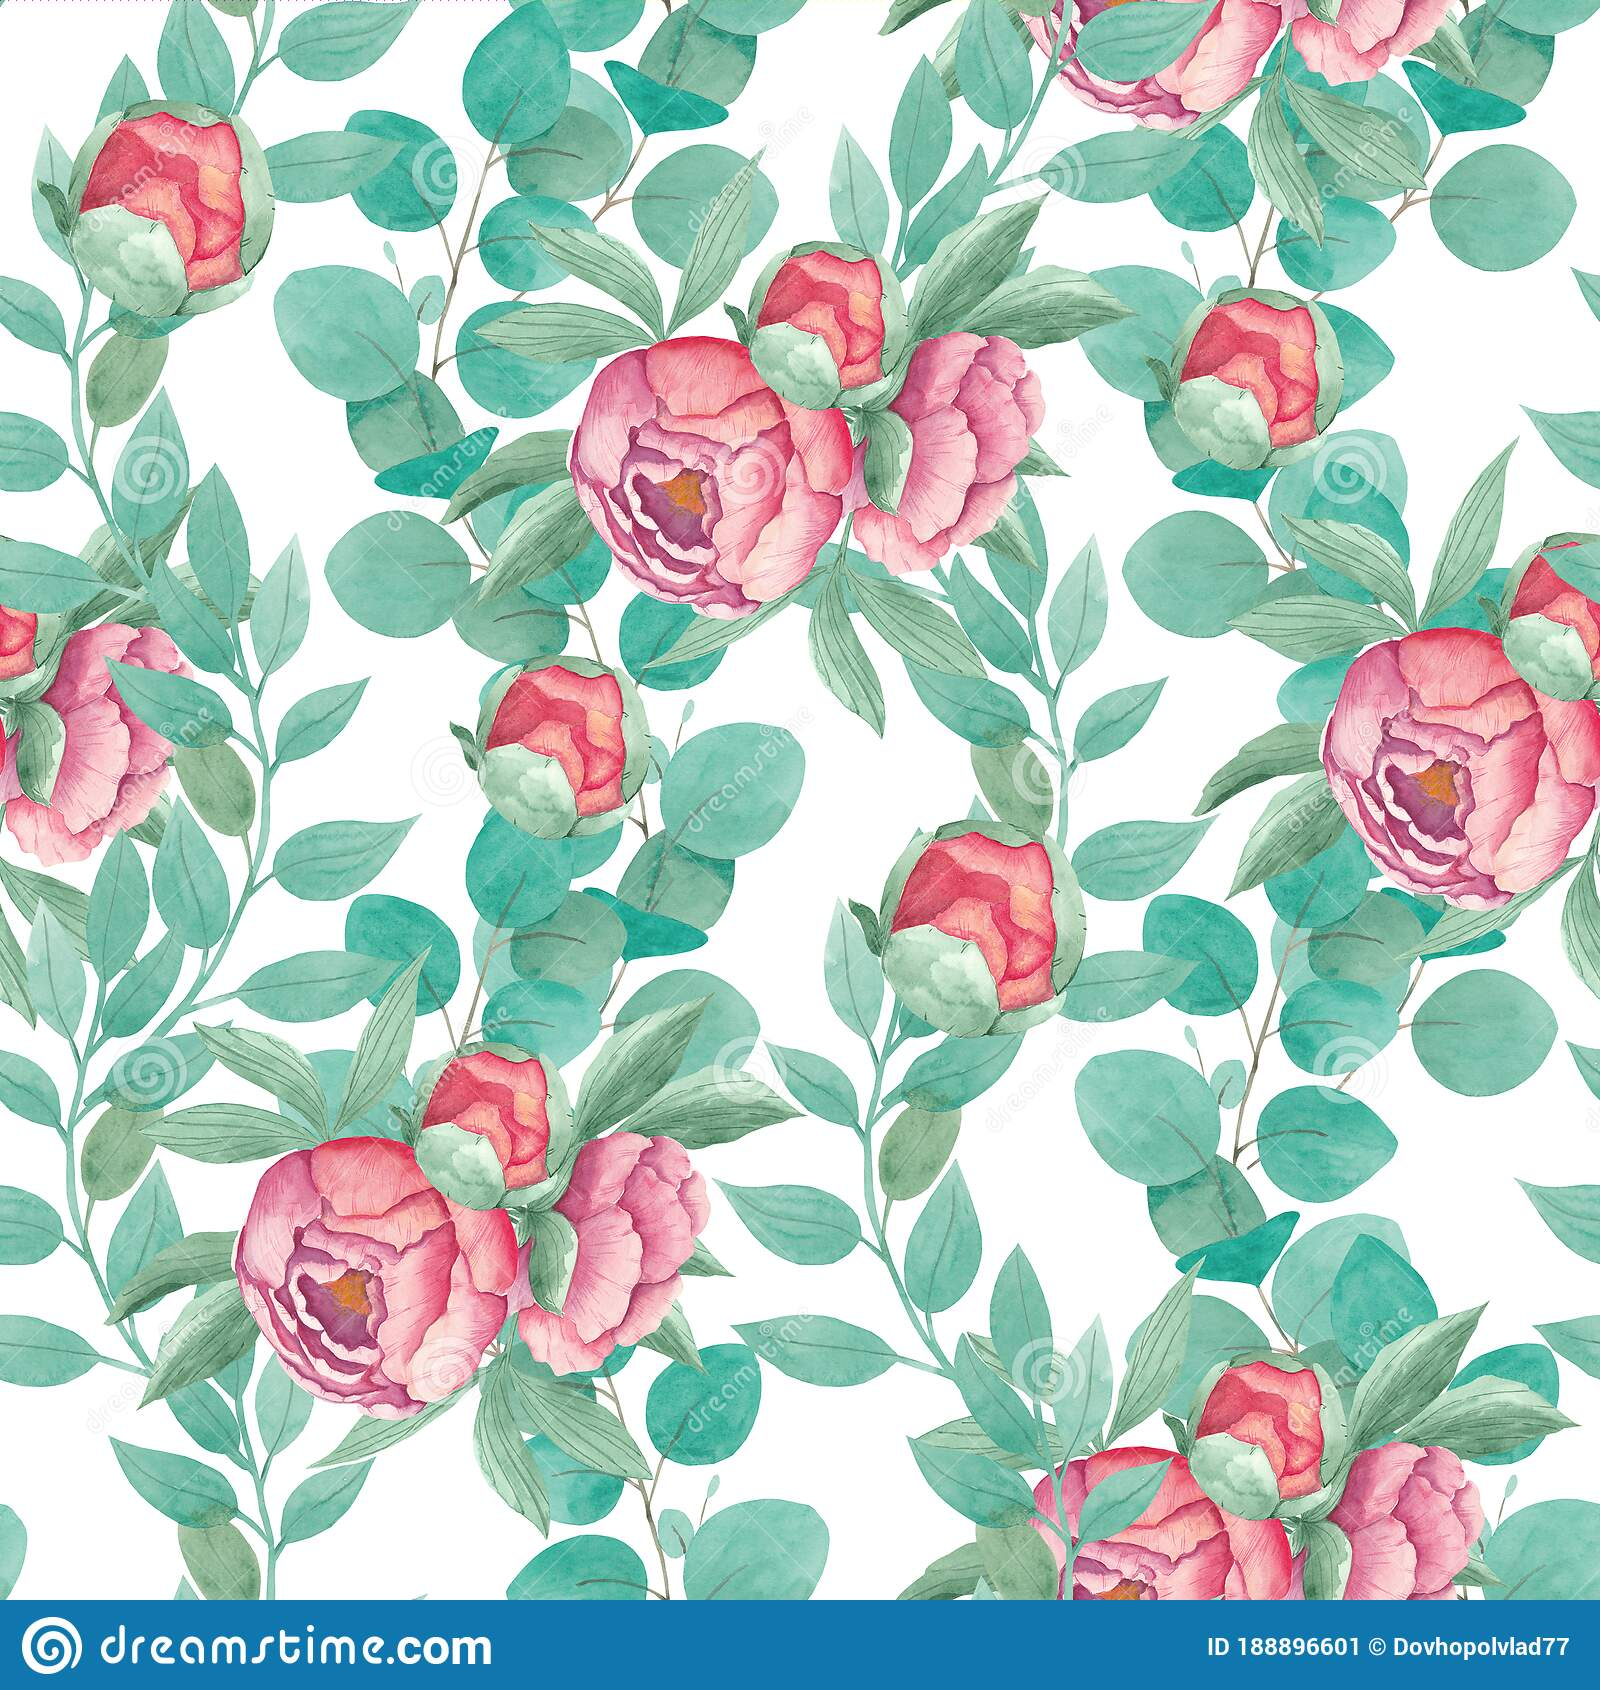 Watercolor Seamless Pattern Bouquet Peony Flowers With Leaves Branches Of Eucalypt Isolated On White Background Boho Stock Illustration Illustration Of Fabric Garden 188896601